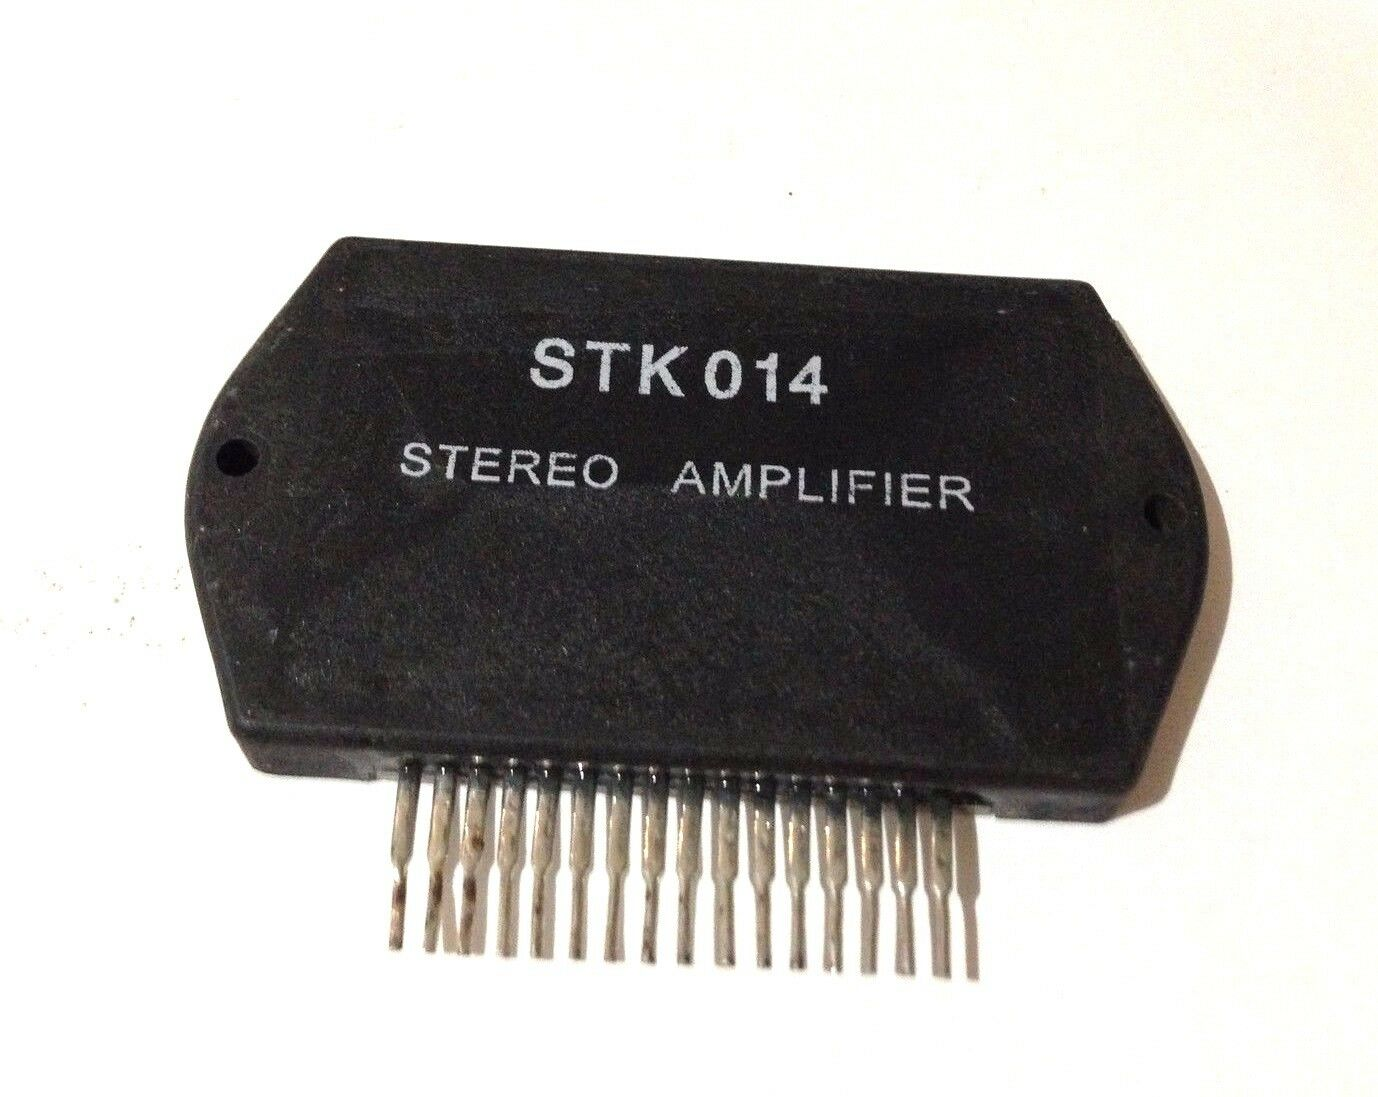 Stk014 Audio Power Amplifier By Sanyo Heat Sink Compound 2695 How To Build Your Own 10watt Using An Ic Tda 2003 1 Of See More